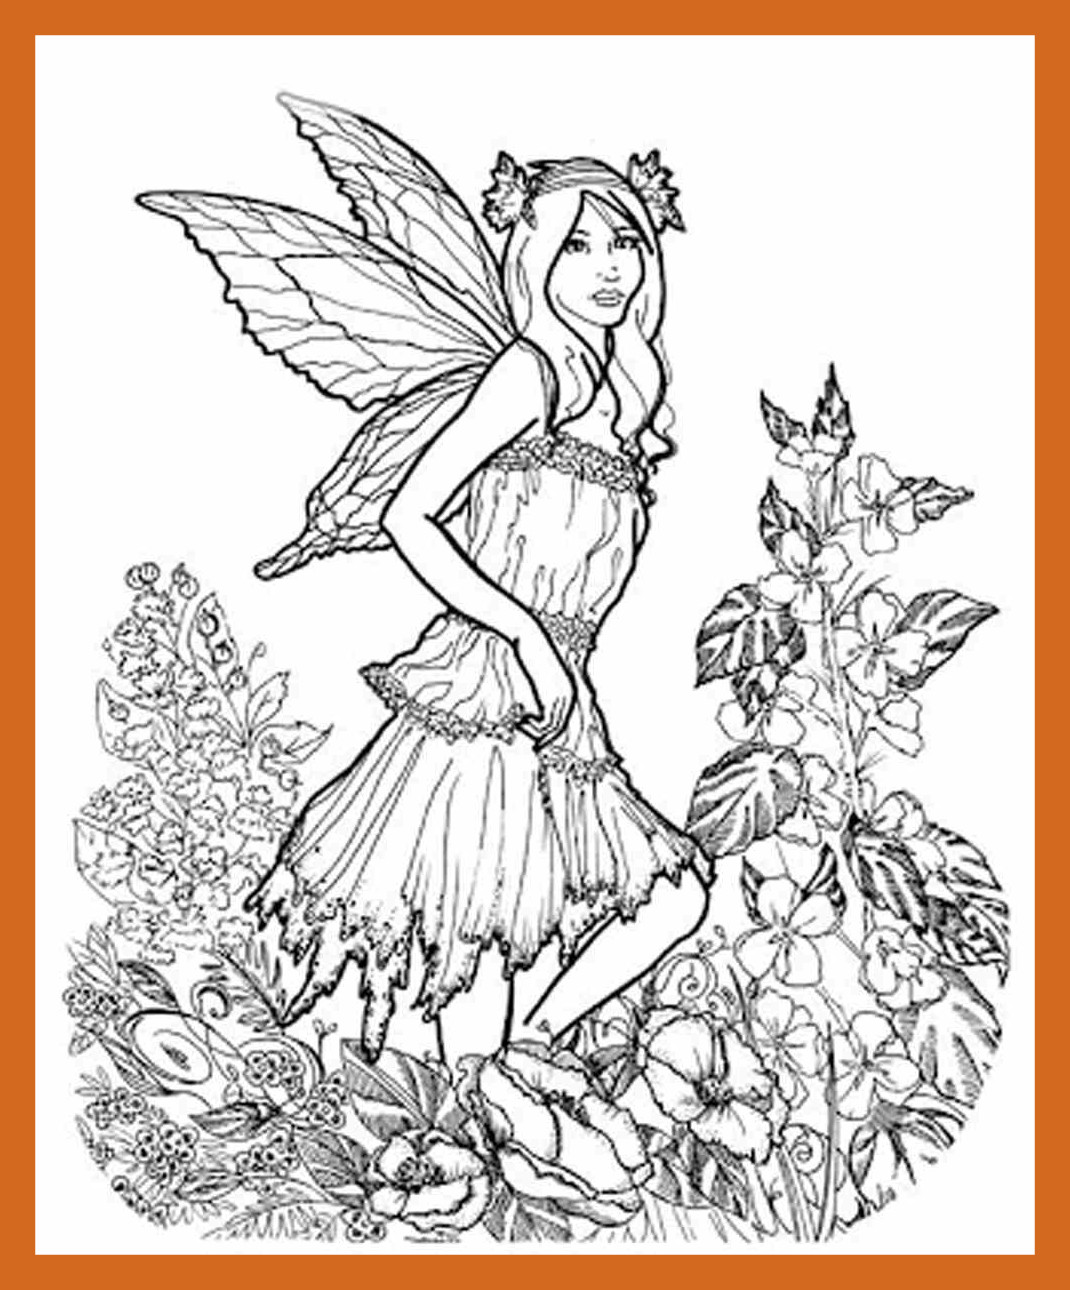 1070x1290 Inspiring Fairy Adult Coloring Pages Lifeafterdeportation Org